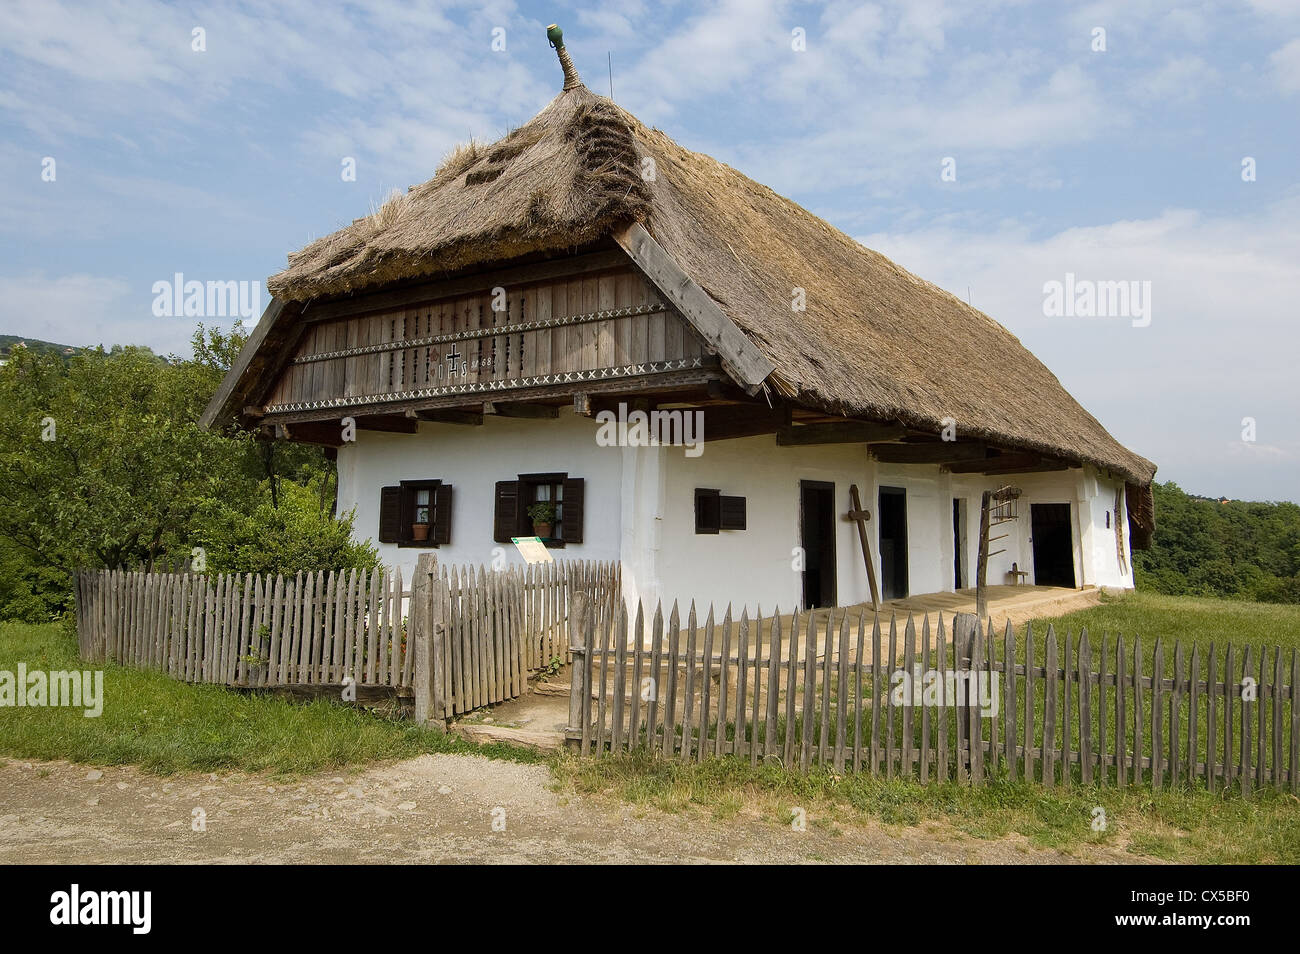 Elk190-2100 Hungary, Szentendre, Open-Air Ethnographical Museum, traditional farmhouse with thatch roof - Stock Image